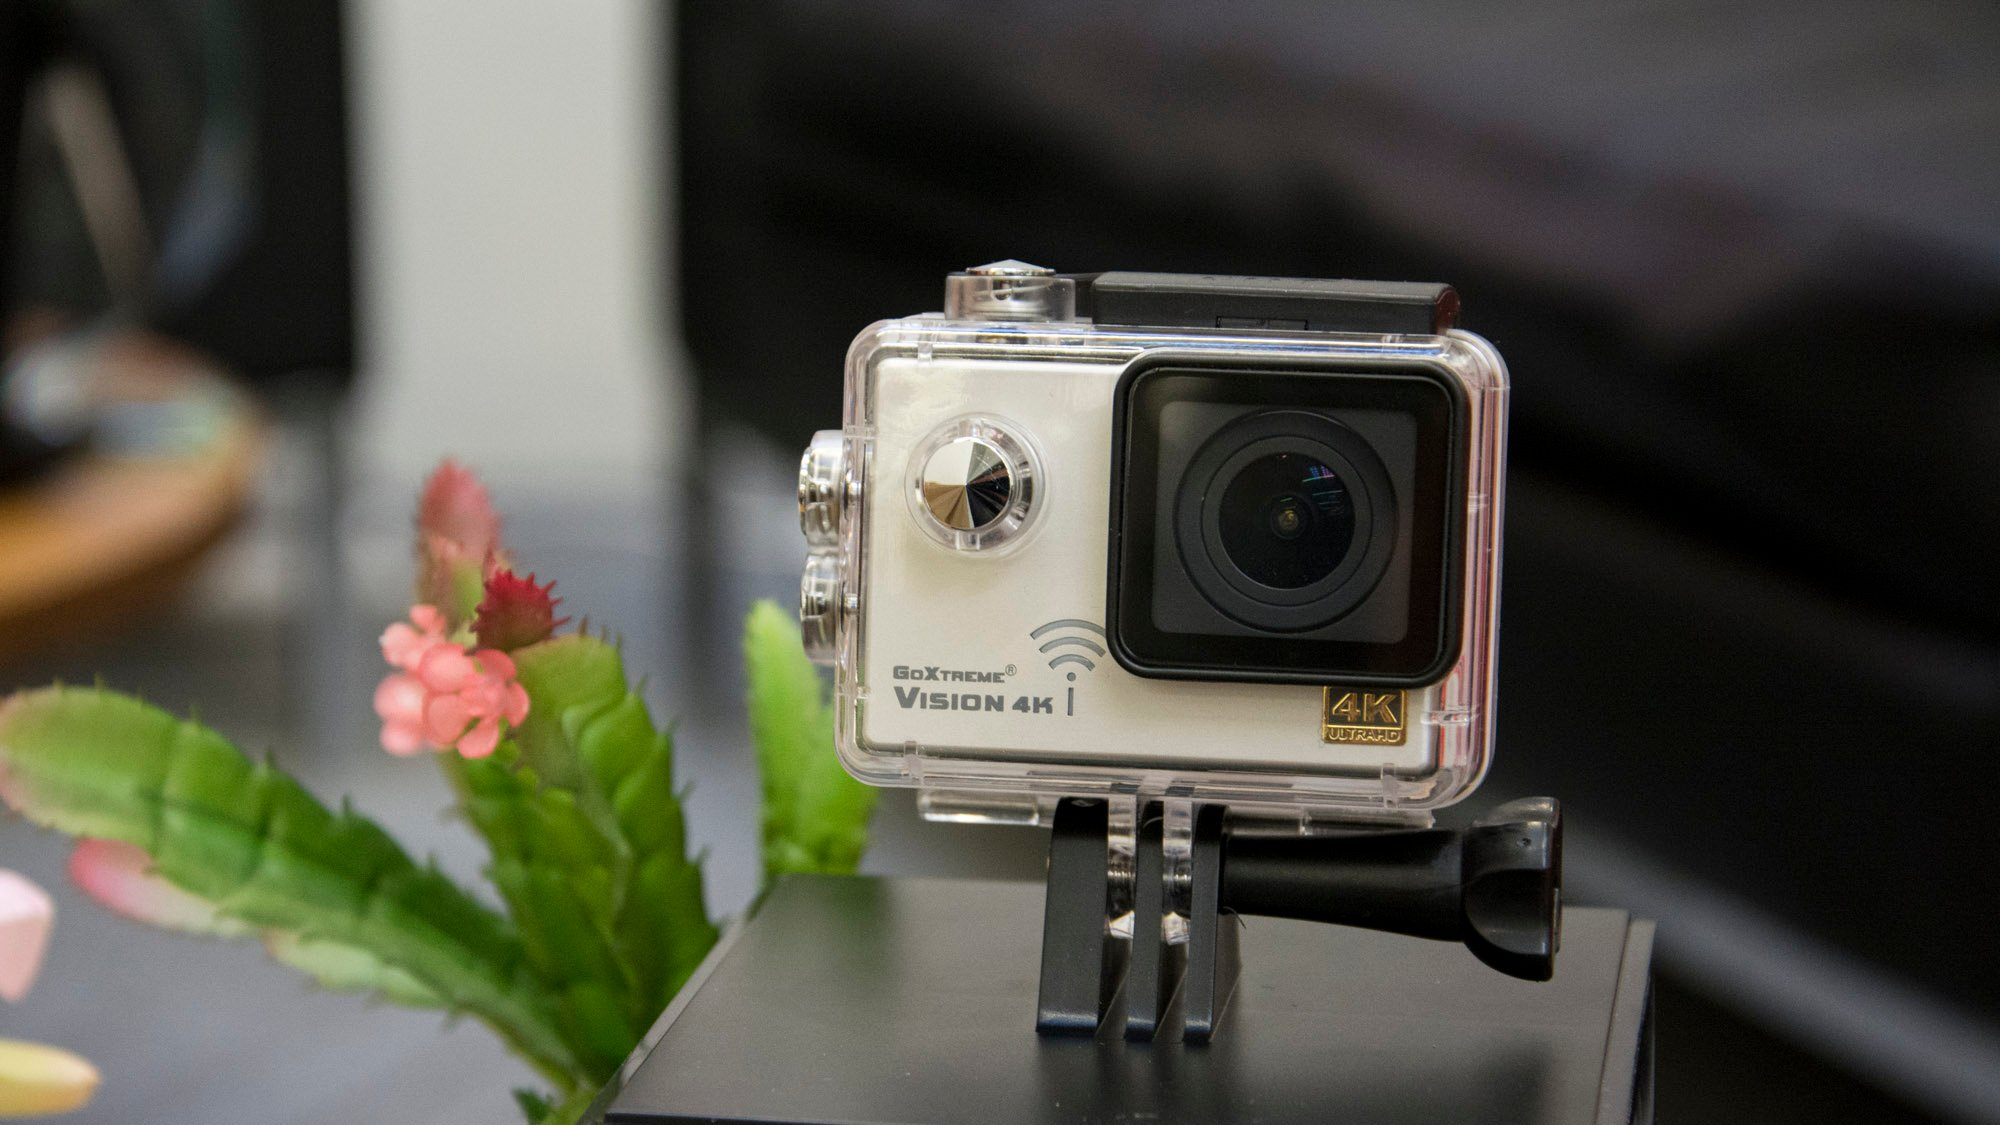 GoXtreme Vision 4K review: A low-cost 4K action camera, but is it